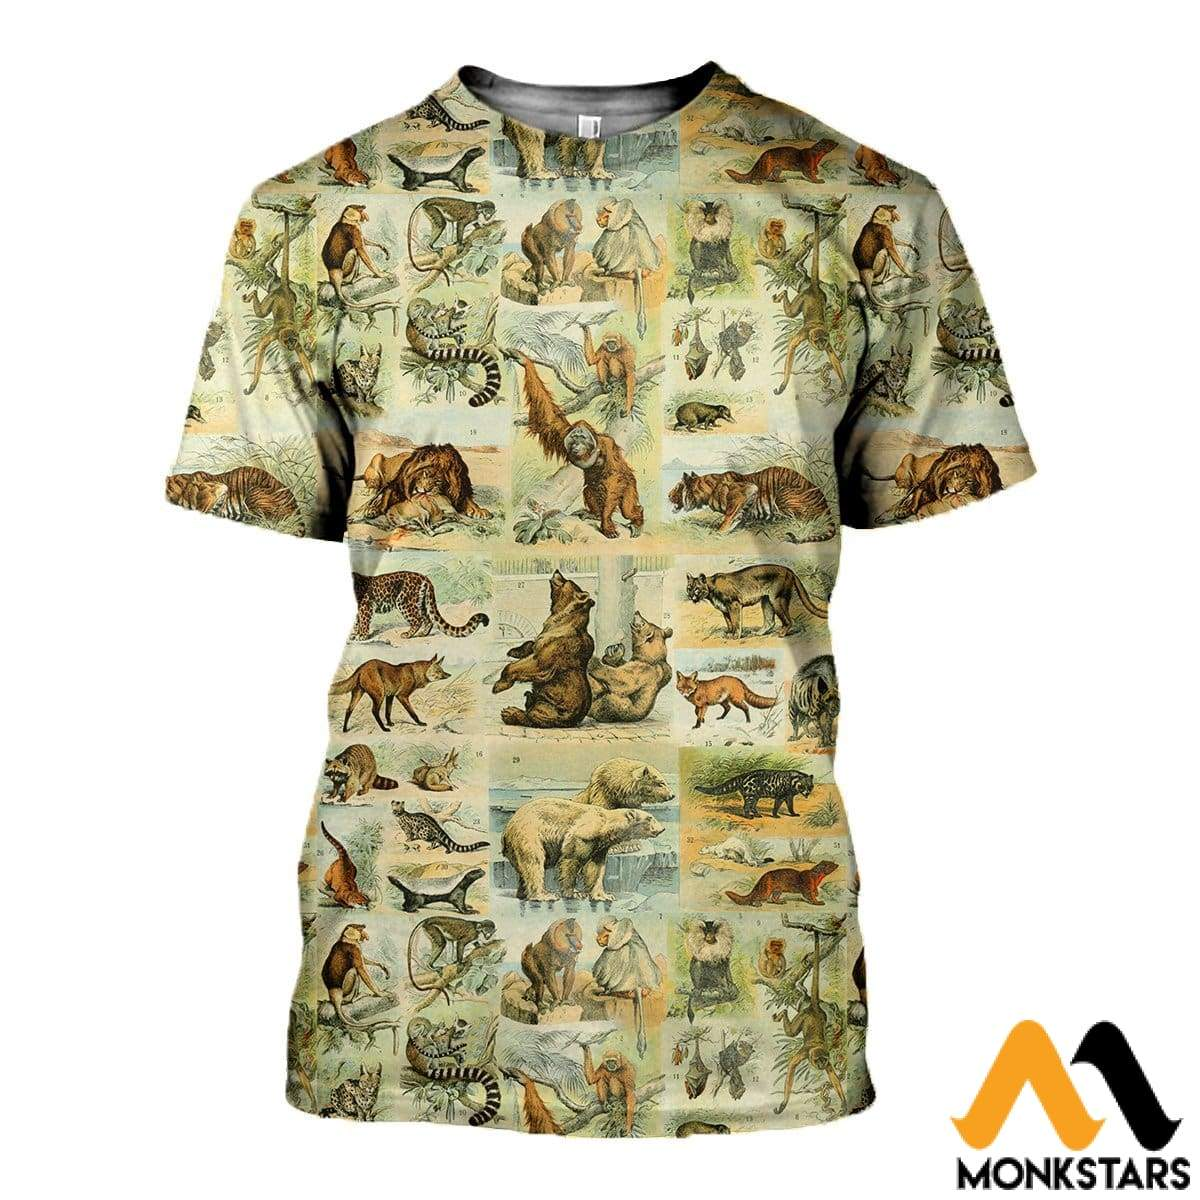 3D All Over Printed Mammals Shirts And Shorts T-Shirt / Xs Clothes